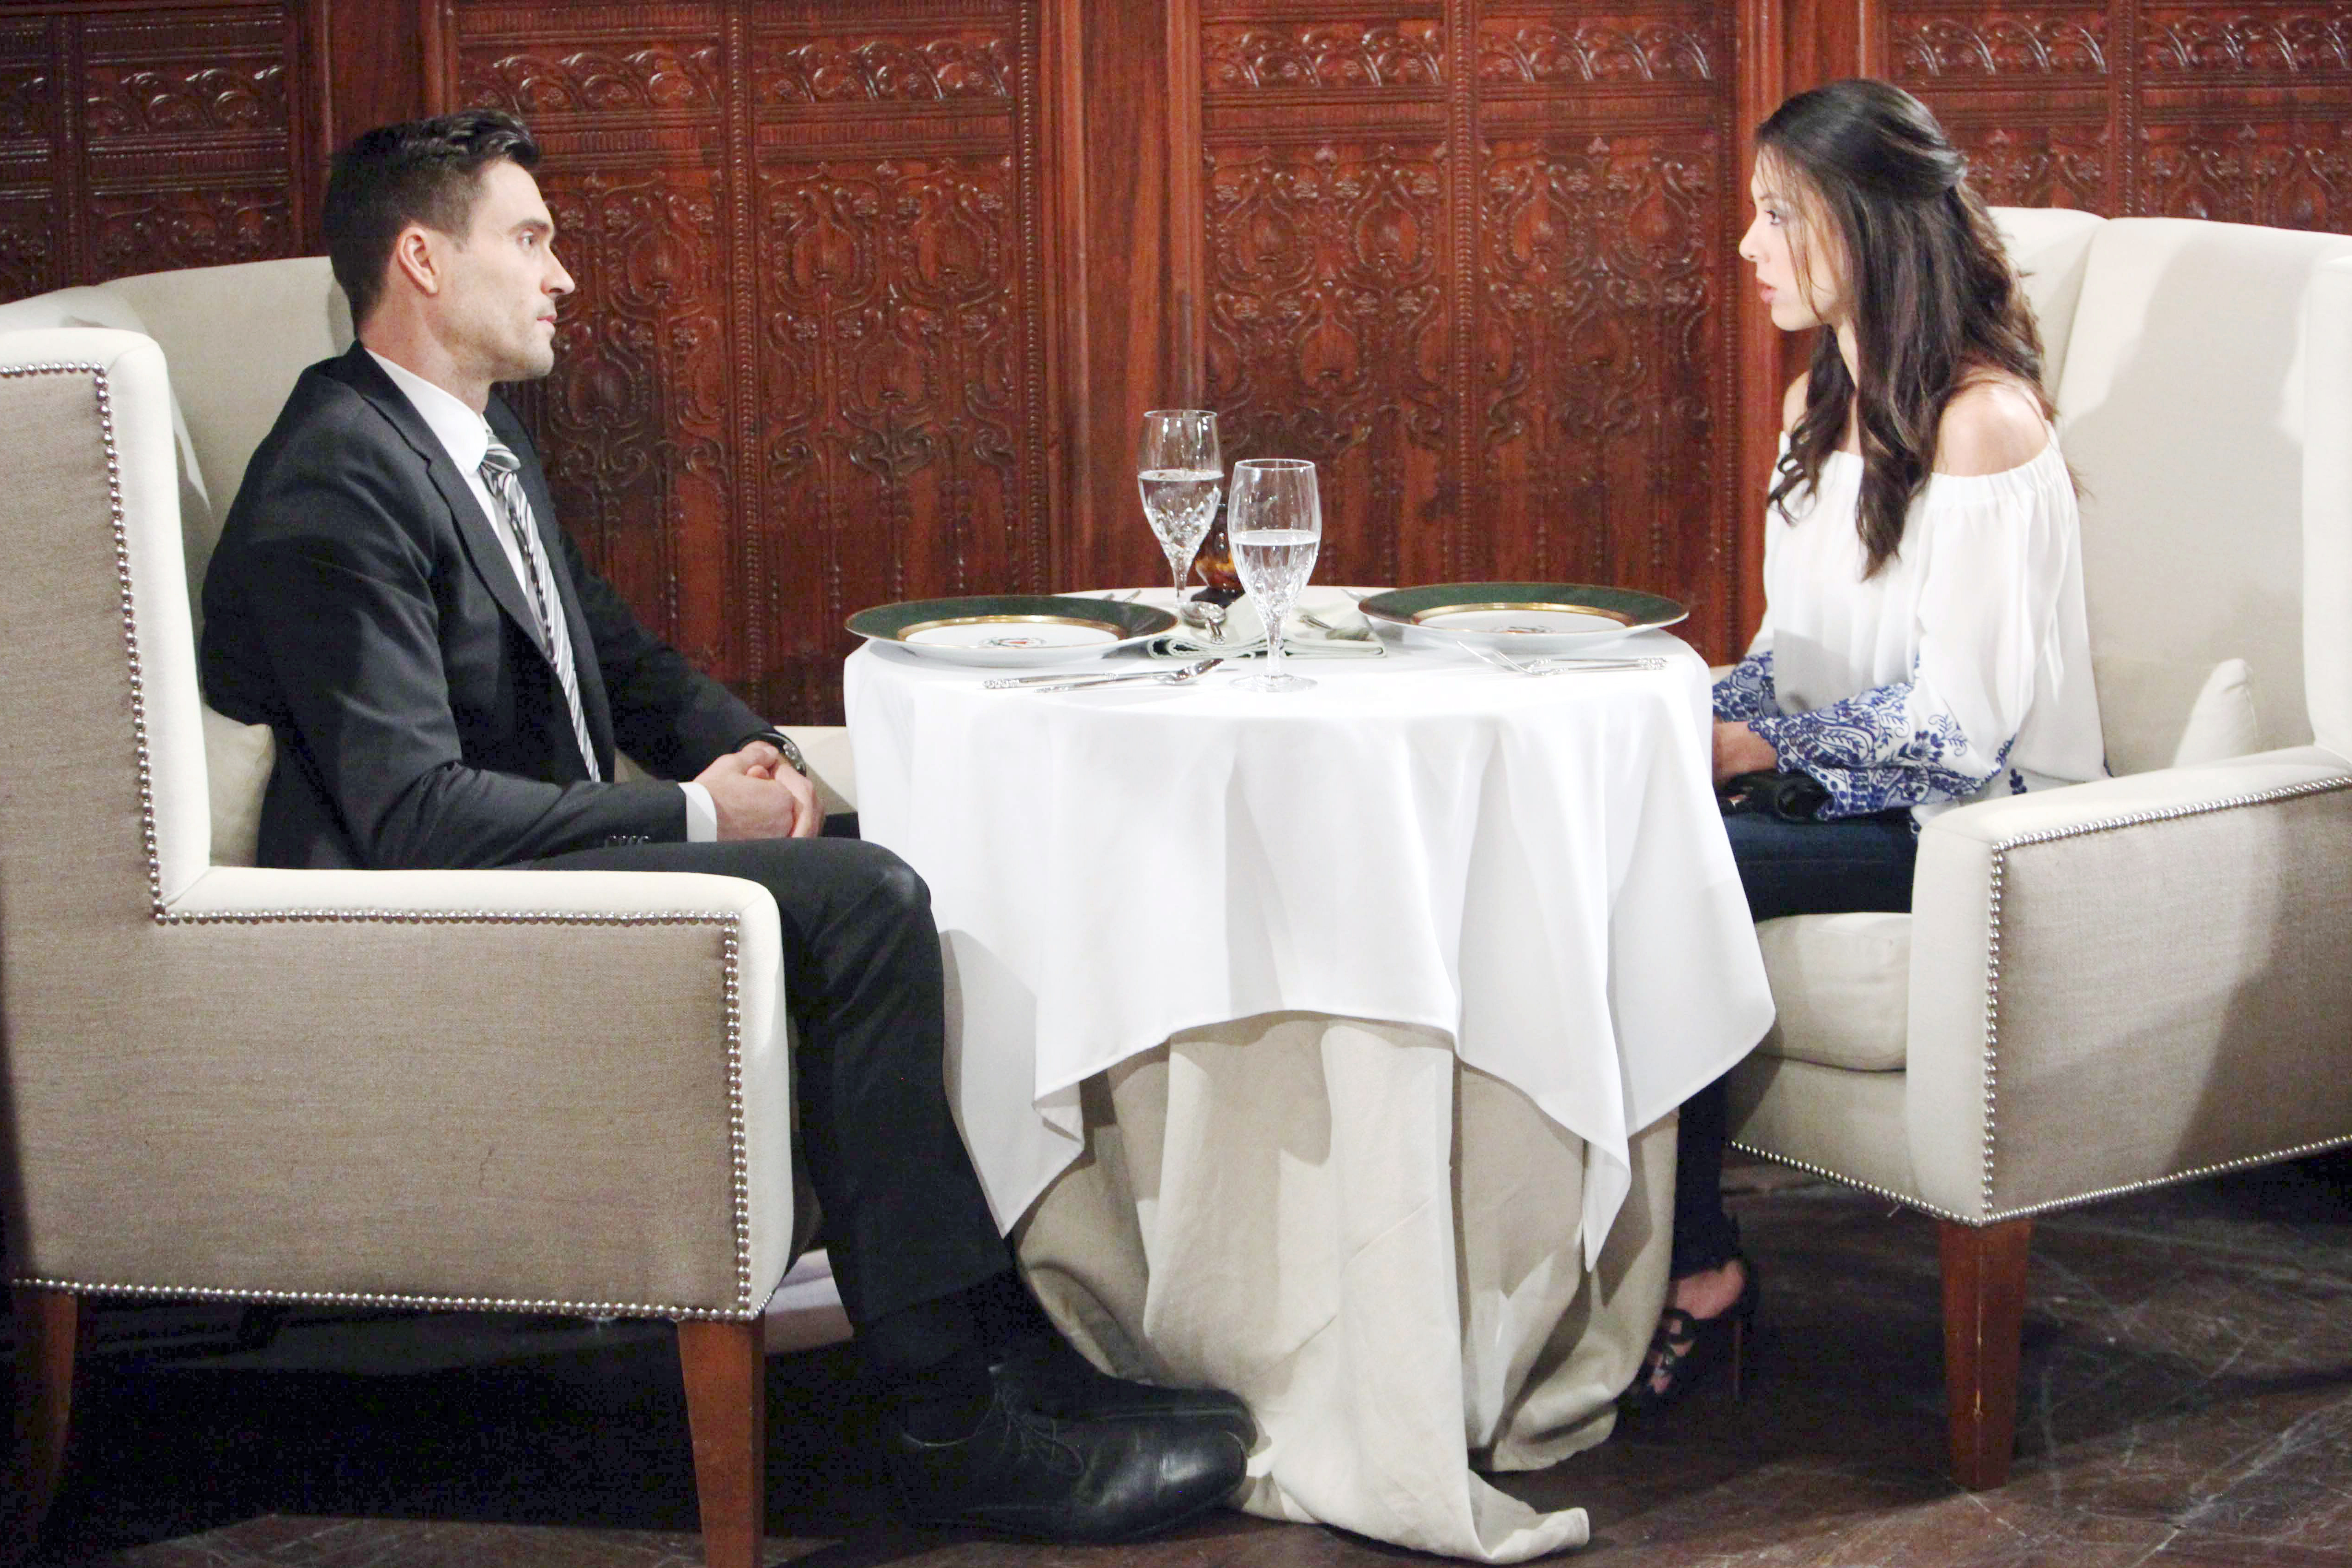 The Young and the Restless Spoiler: Cane and Juliet learn news about their baby.